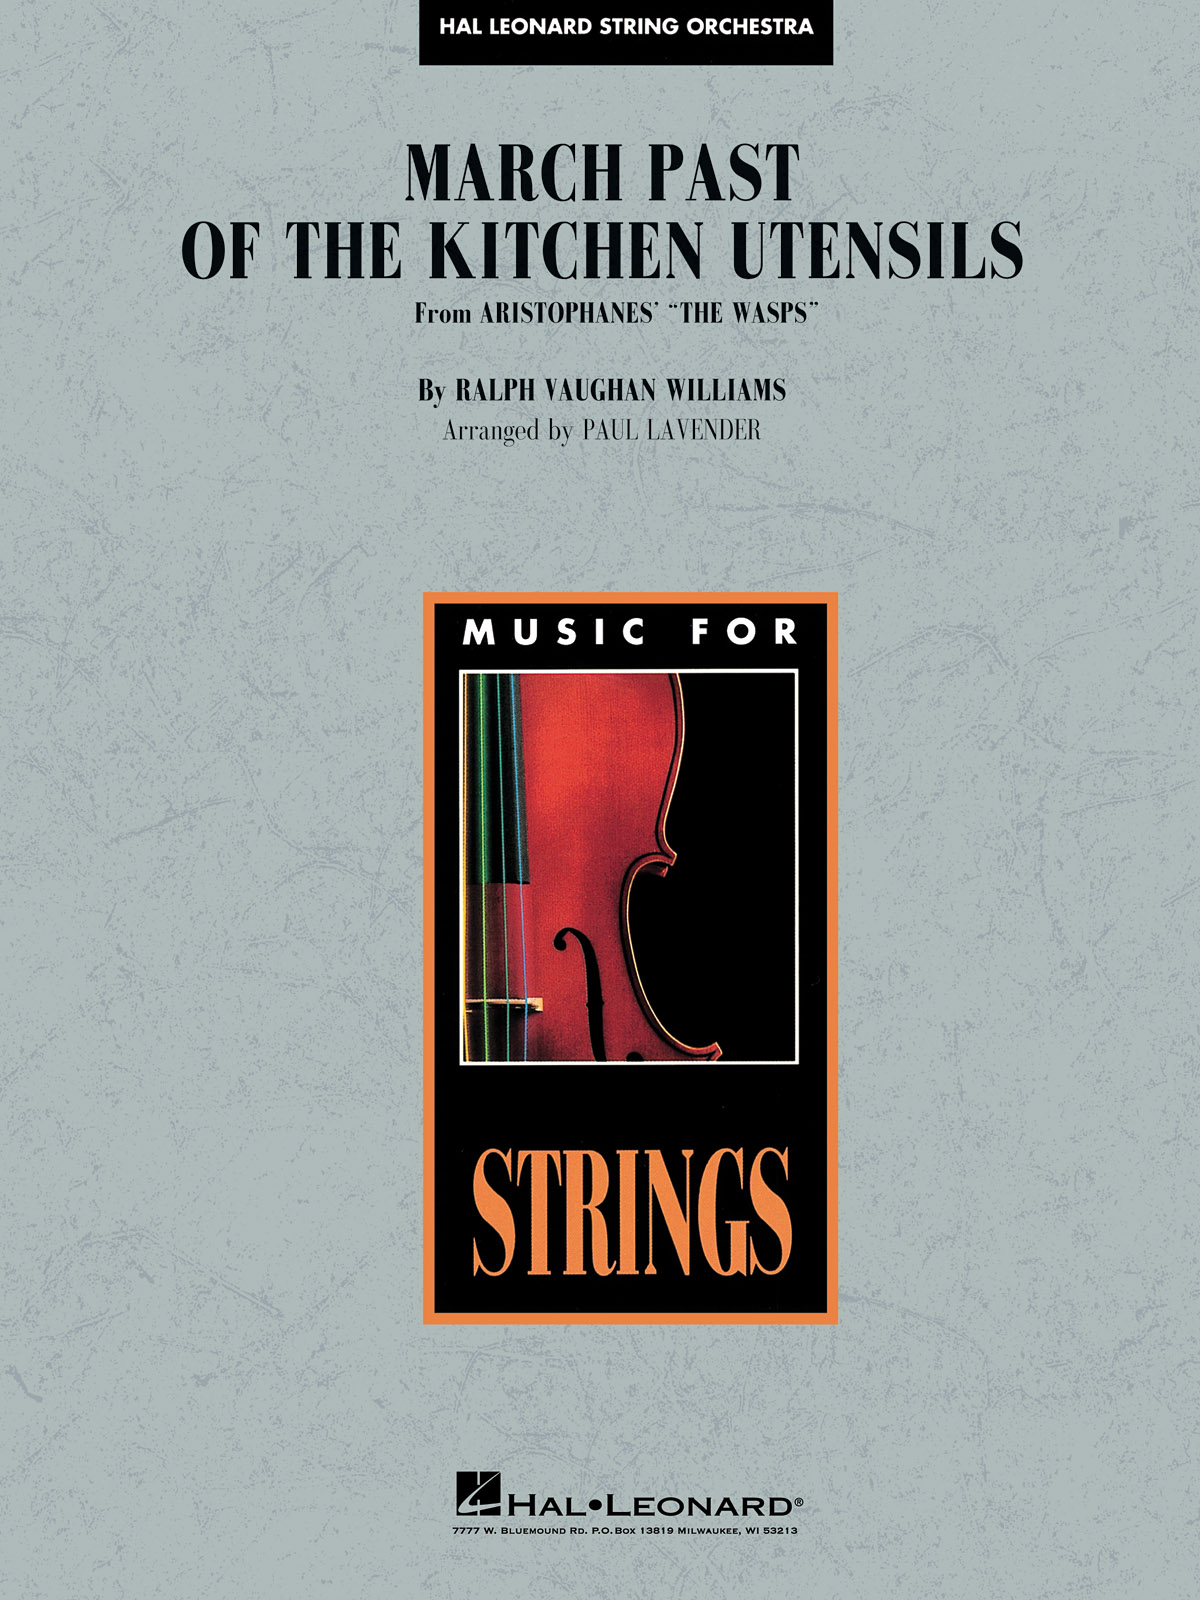 Ralph Vaughan Williams: March Past the Kitchen Utensils (from The Wasps): String